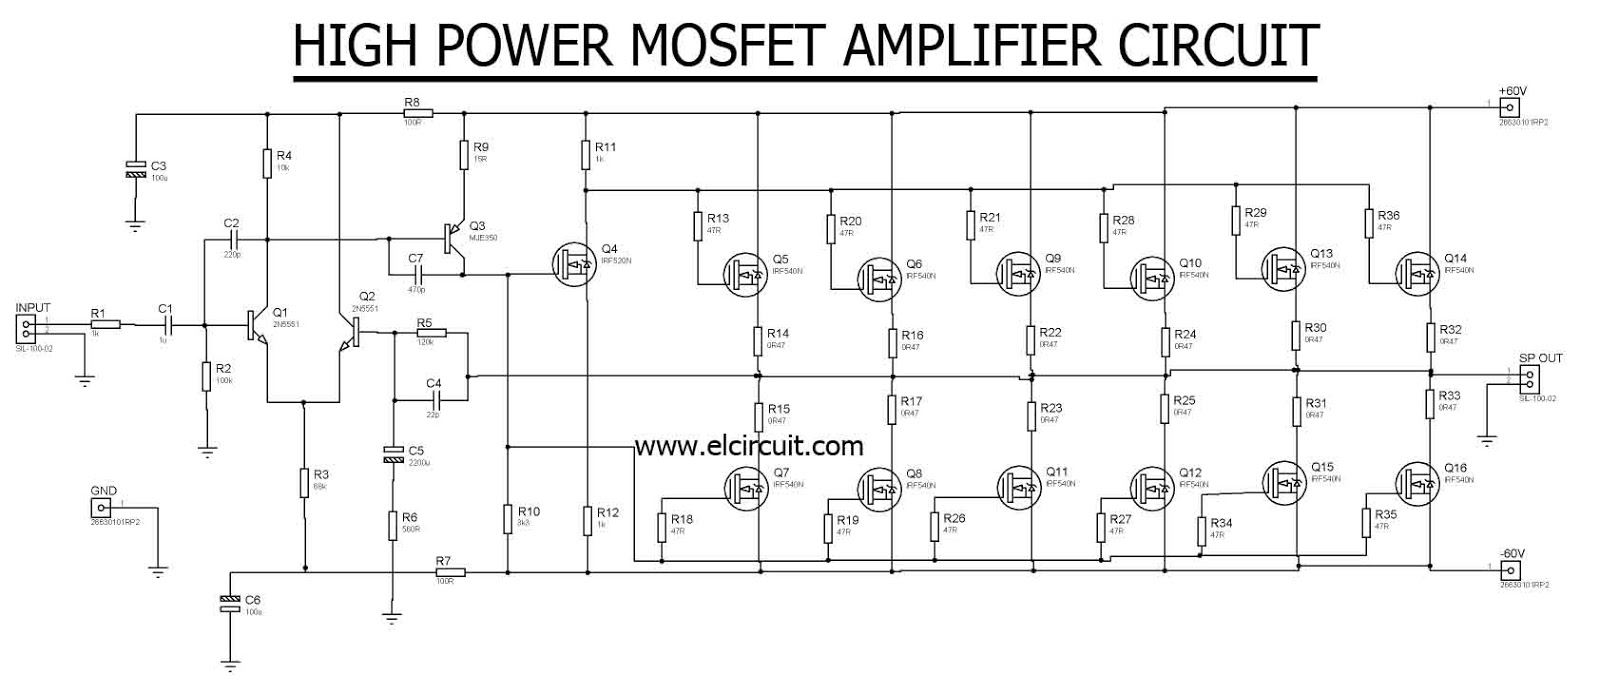 high power mosfet amplifier irf540n electronic circuit schematic diagram circuit of high power amplifier high power amplifier circuit diagram [ 1600 x 695 Pixel ]